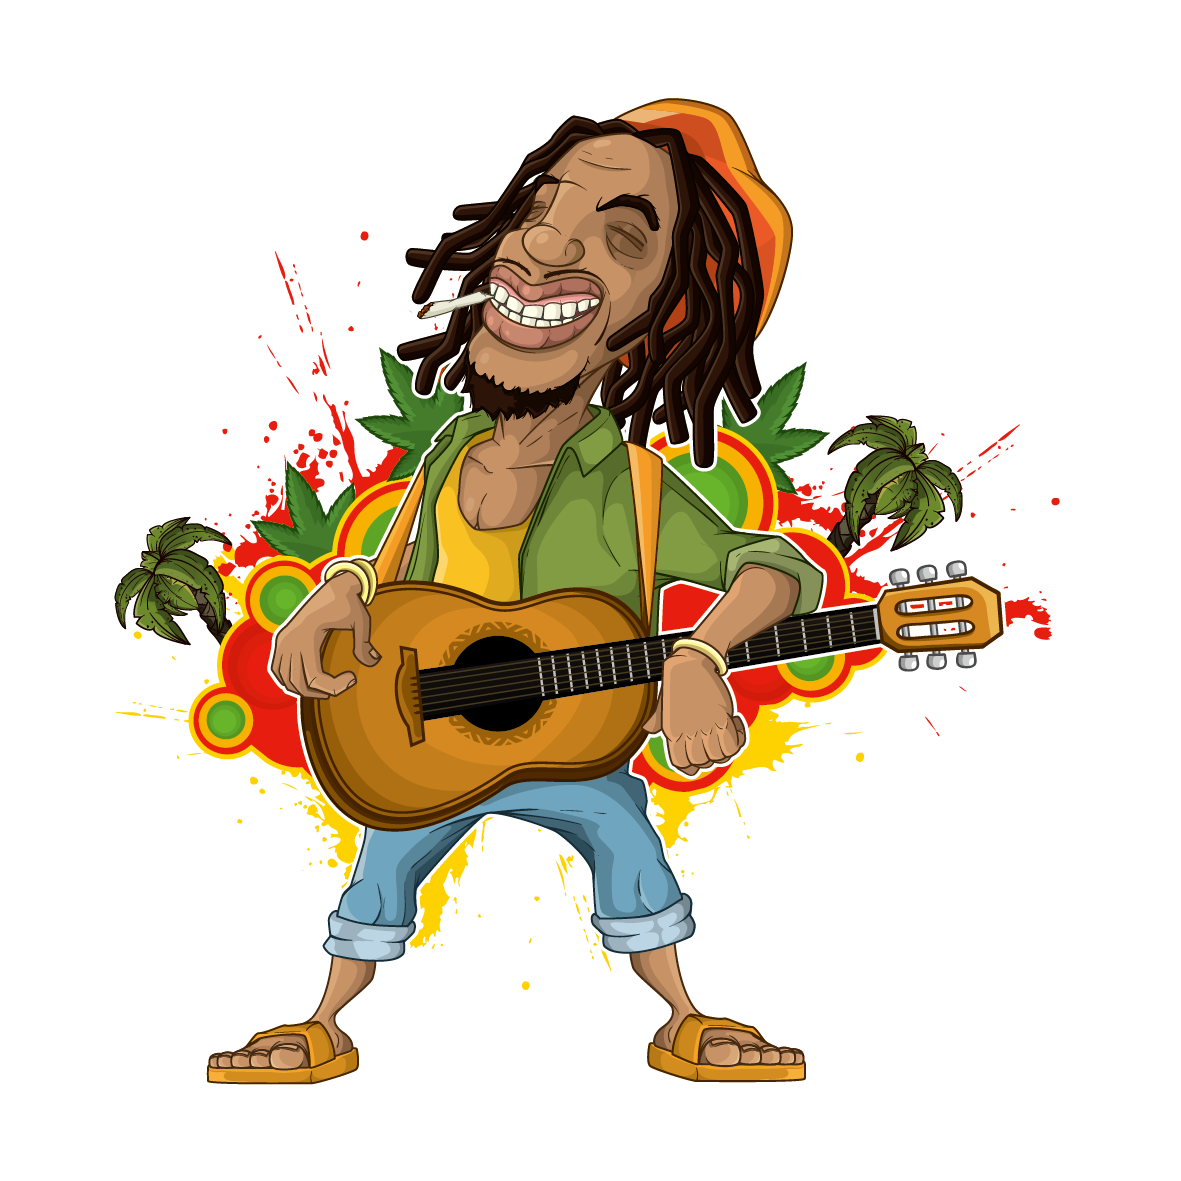 Clipart guitar microphone. Rastafari cartoon reggae illustration